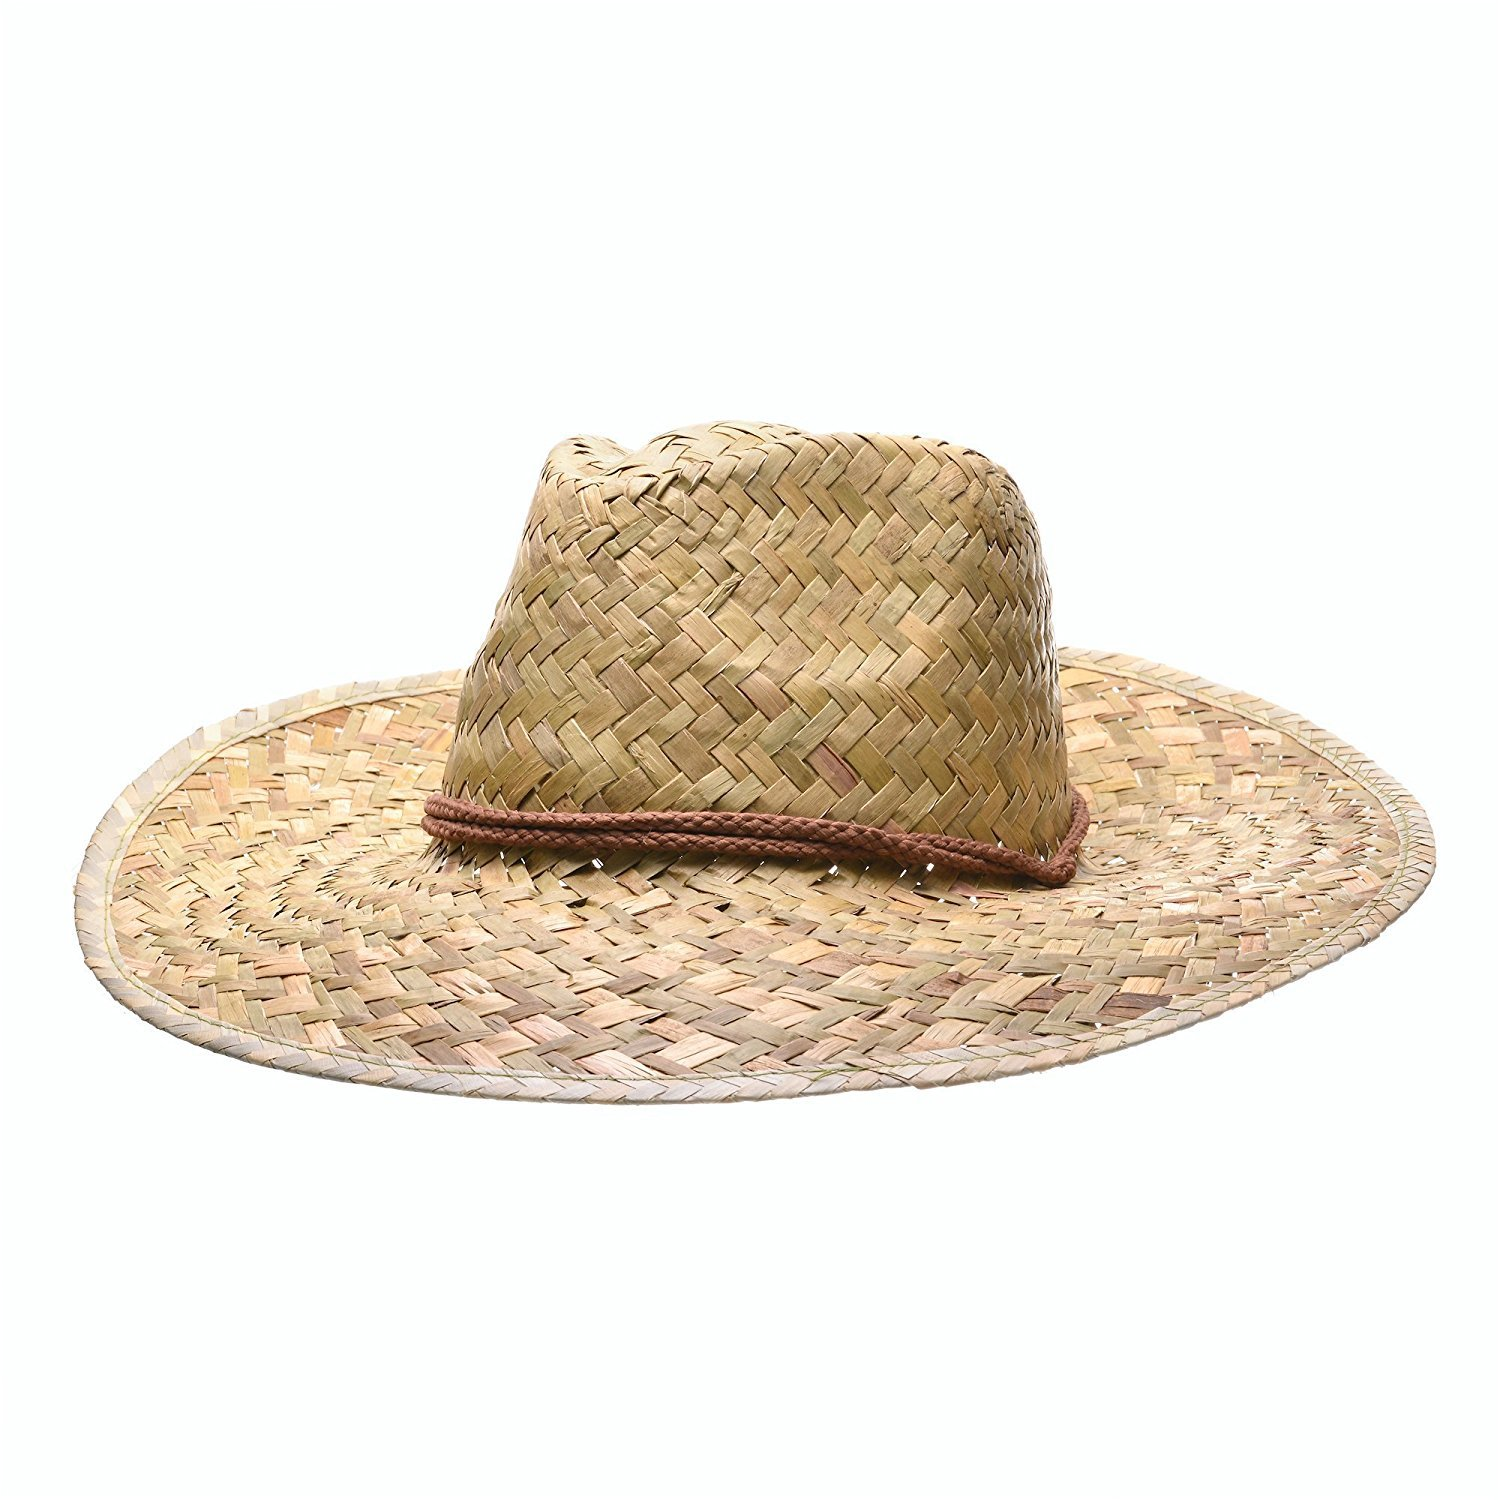 Woven Straw Cowboy/Cowgirl Hat with Brown Adjustable Drawstring Chinstrap, Great for Costume Parties Bottles N Bags